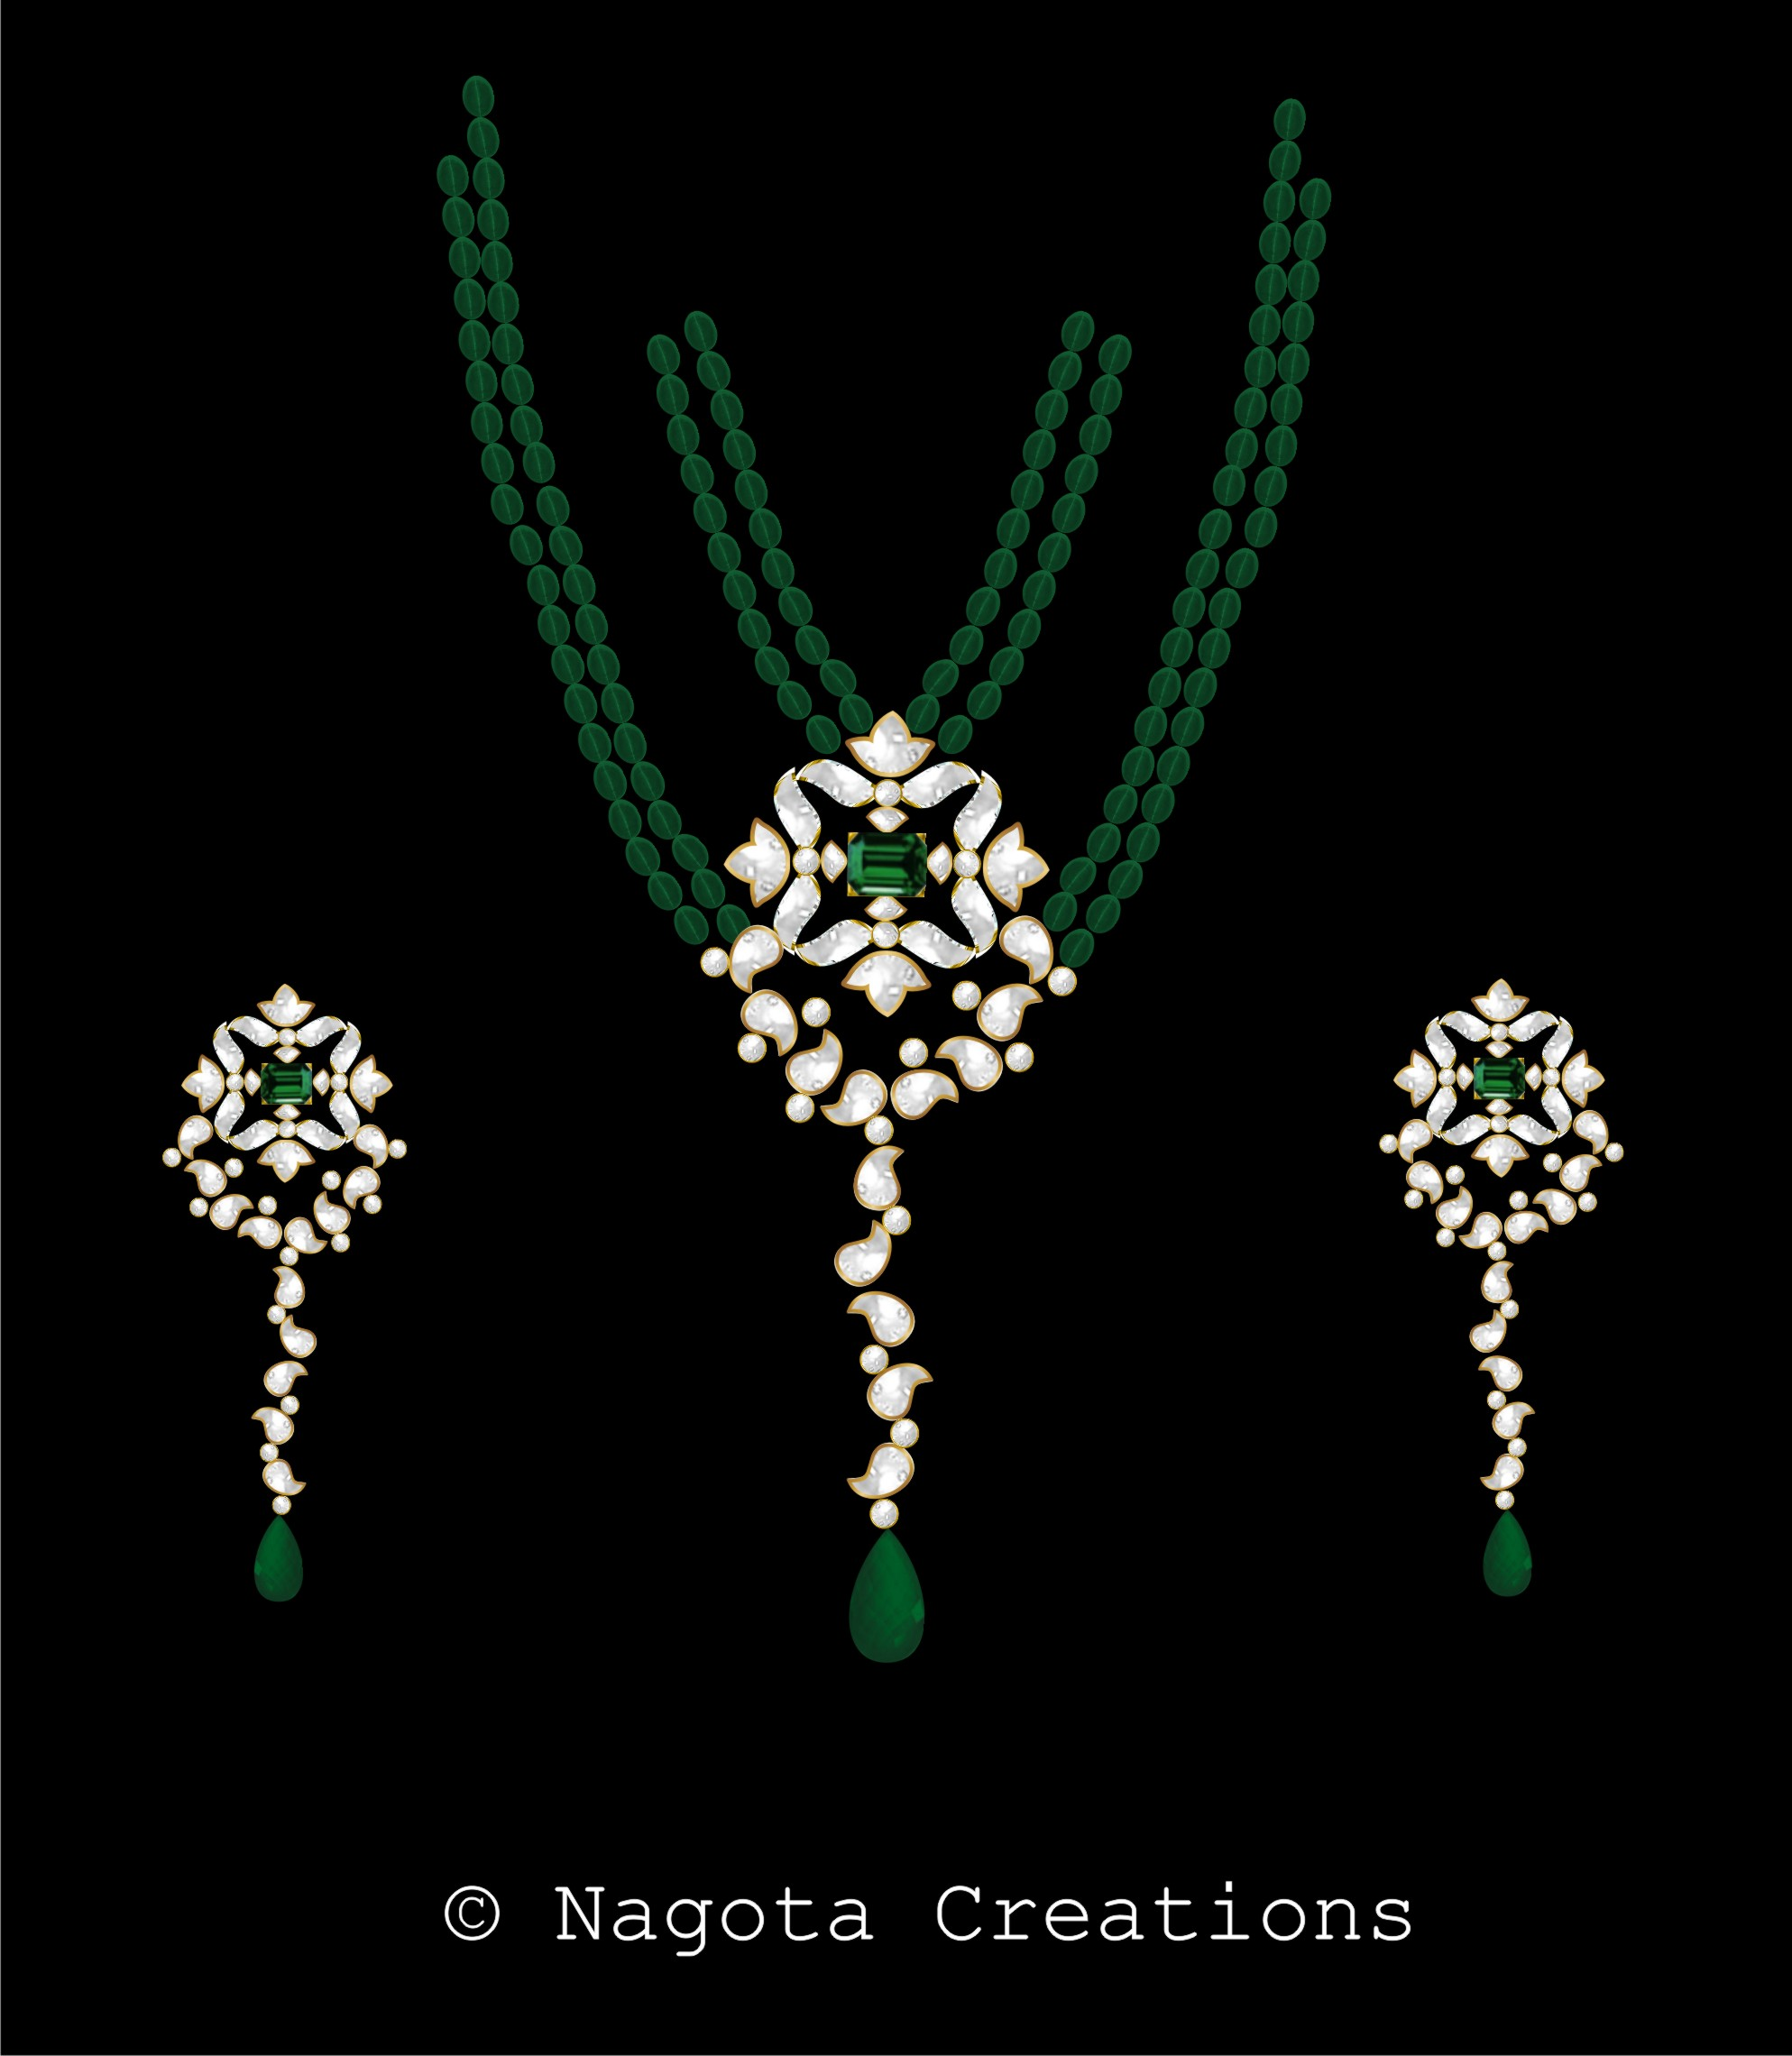 Appealing & Charming Beaded Kundan Meena Necklace Set with Emerald and Diamond Polkis